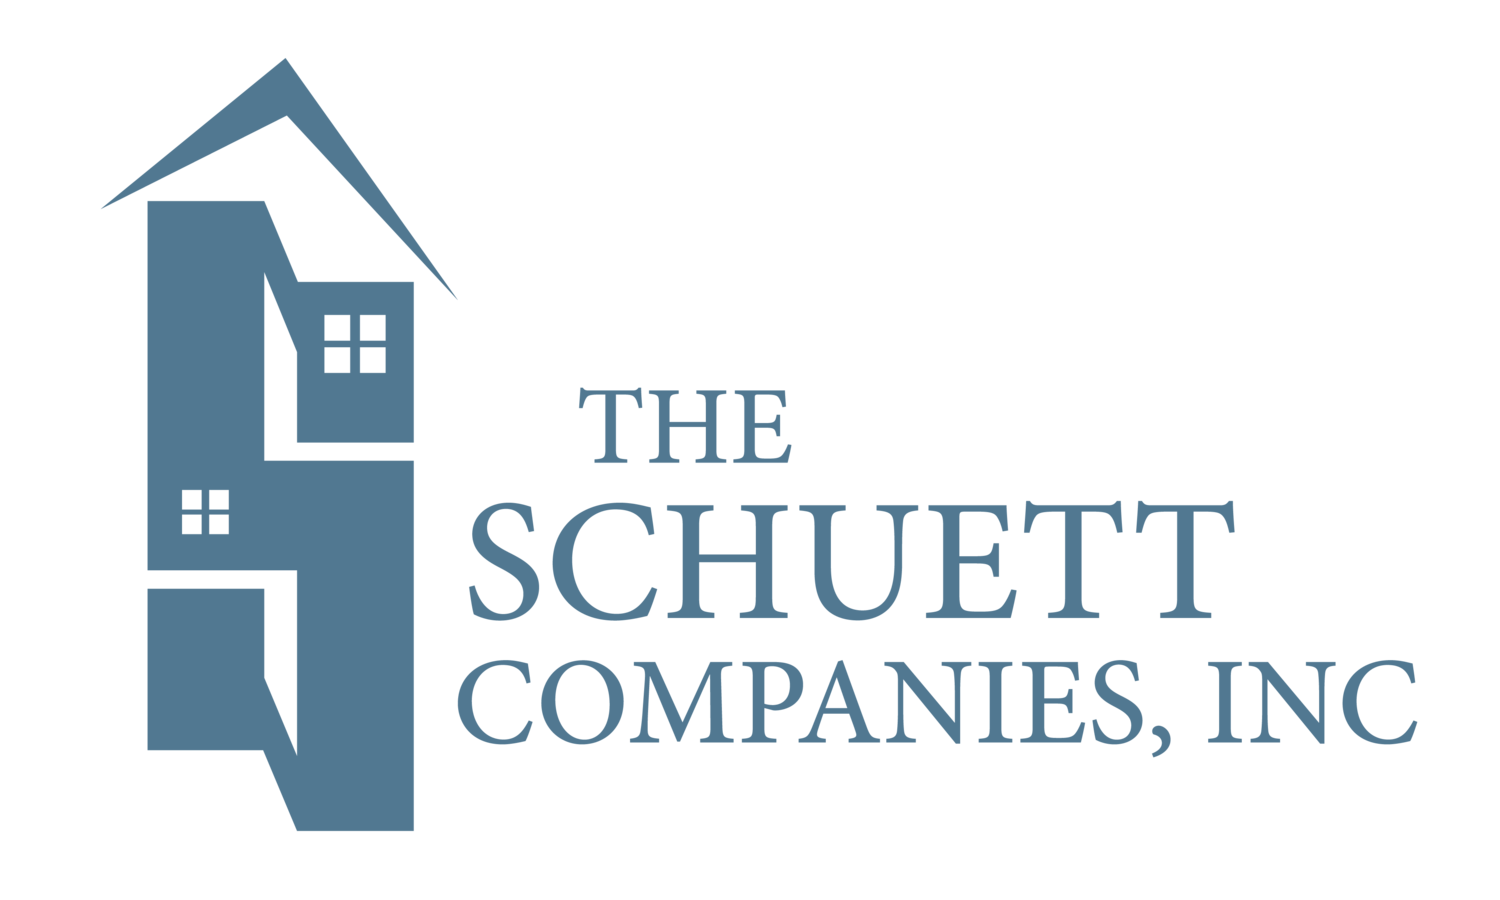 The Schuett Companies, Inc.